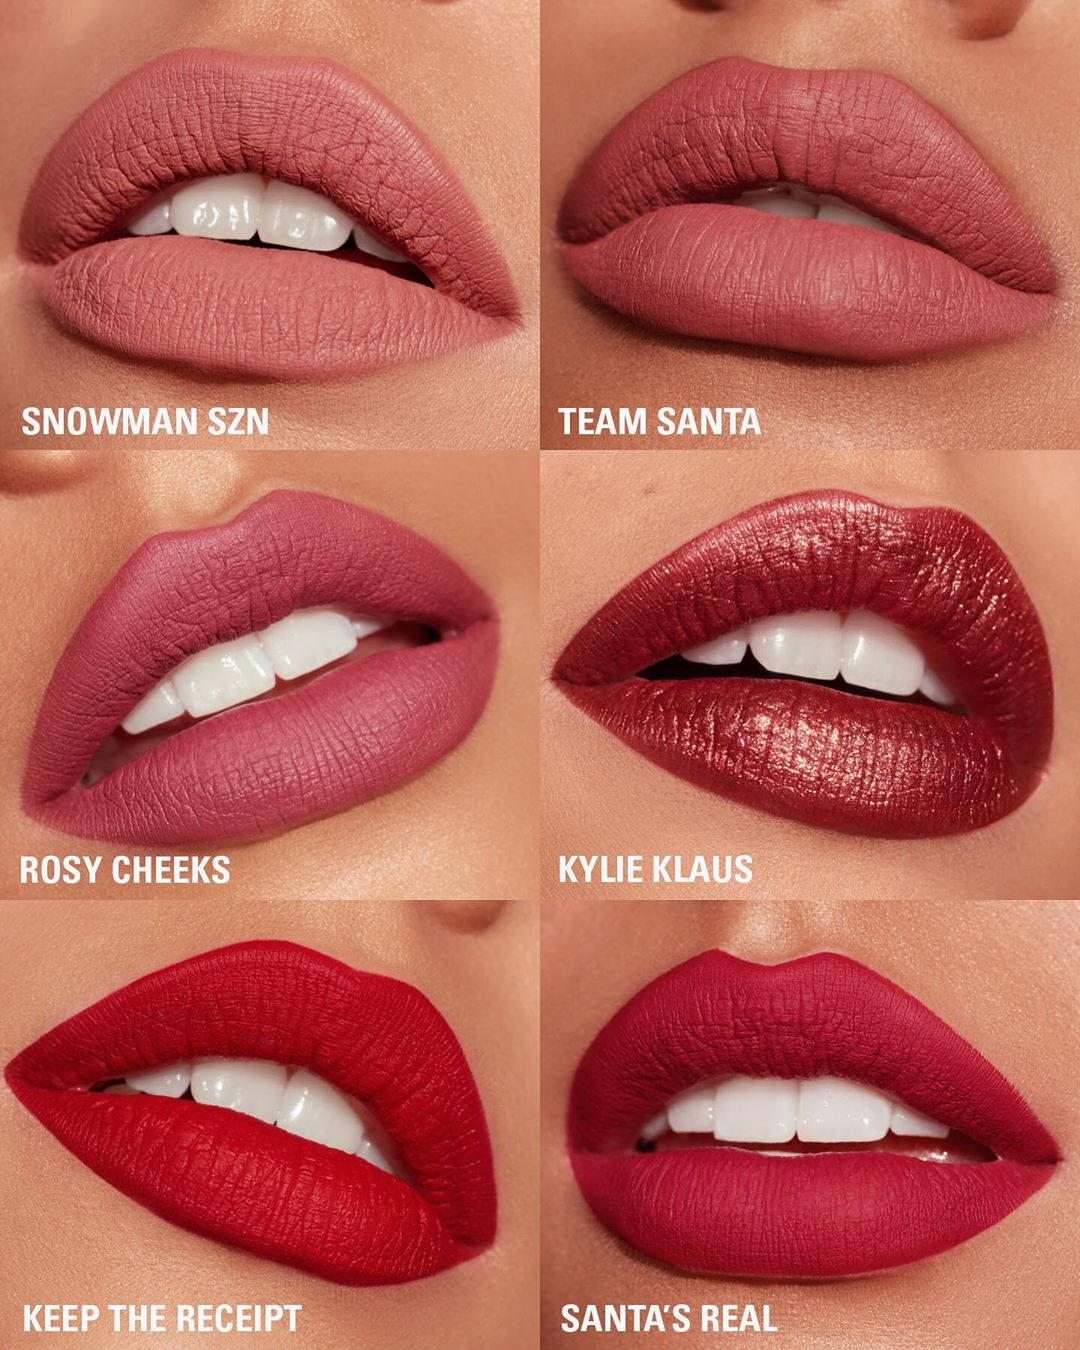 Mini Lip Collection - Kylie Cosmetics Holiday Collection 2019 Revealed - Miss Boux